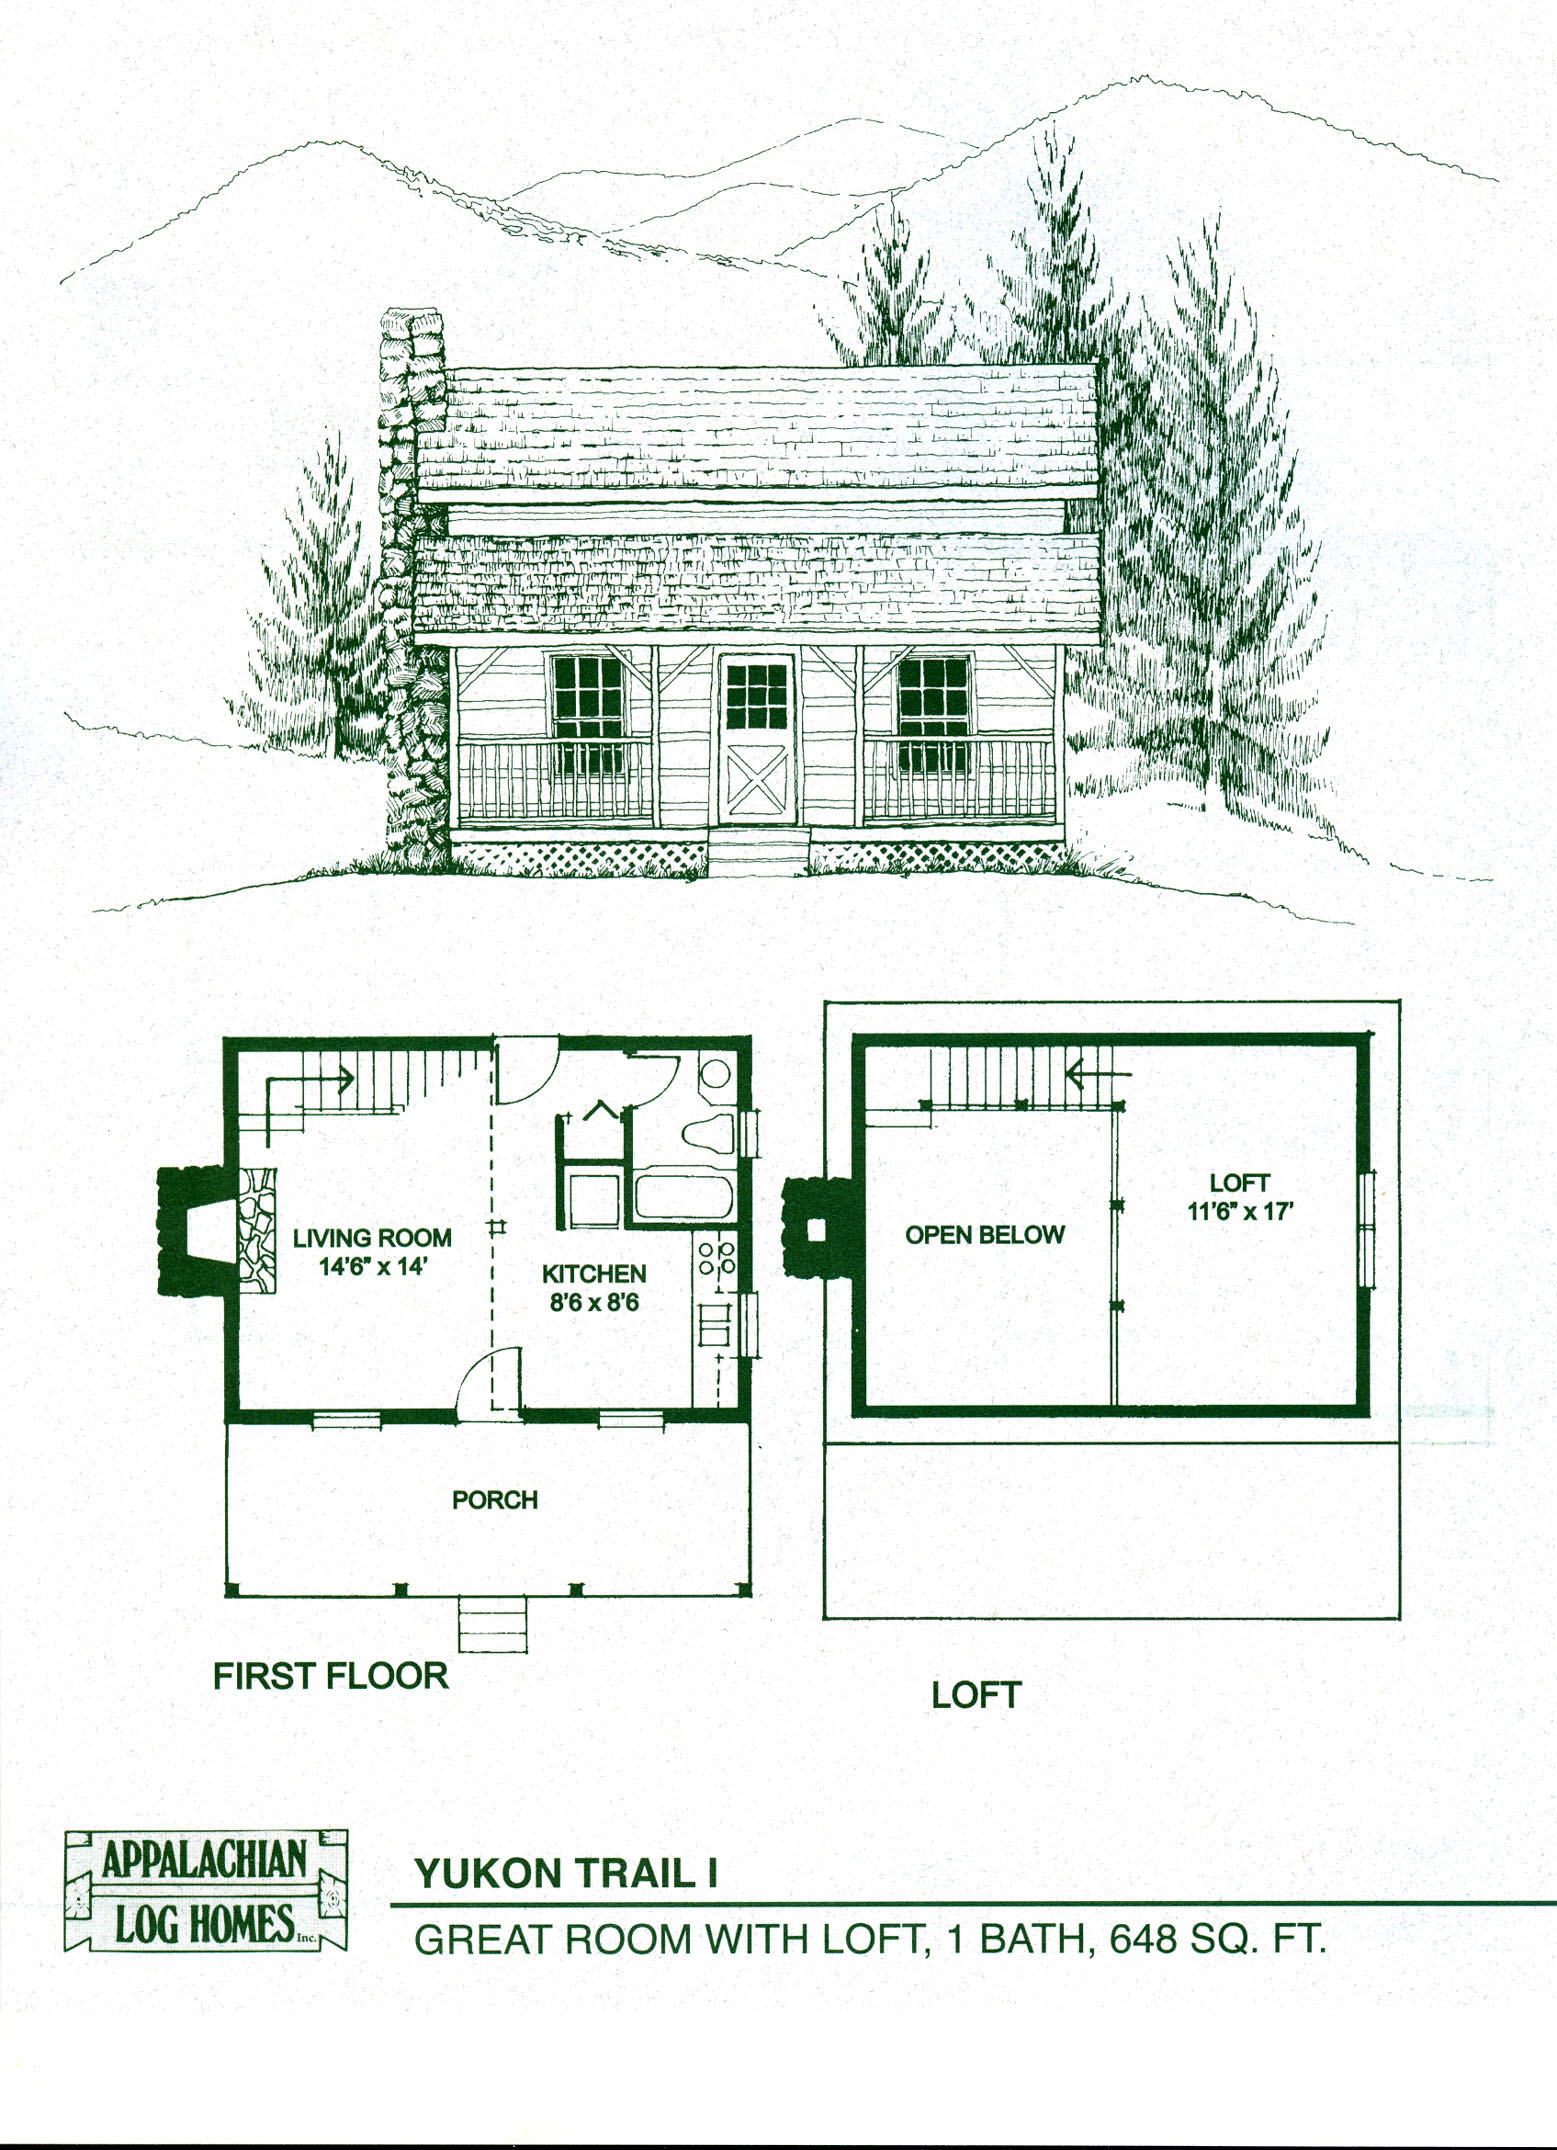 Small cottage home designs 19463 hd wallpapers background Small cottage blueprints